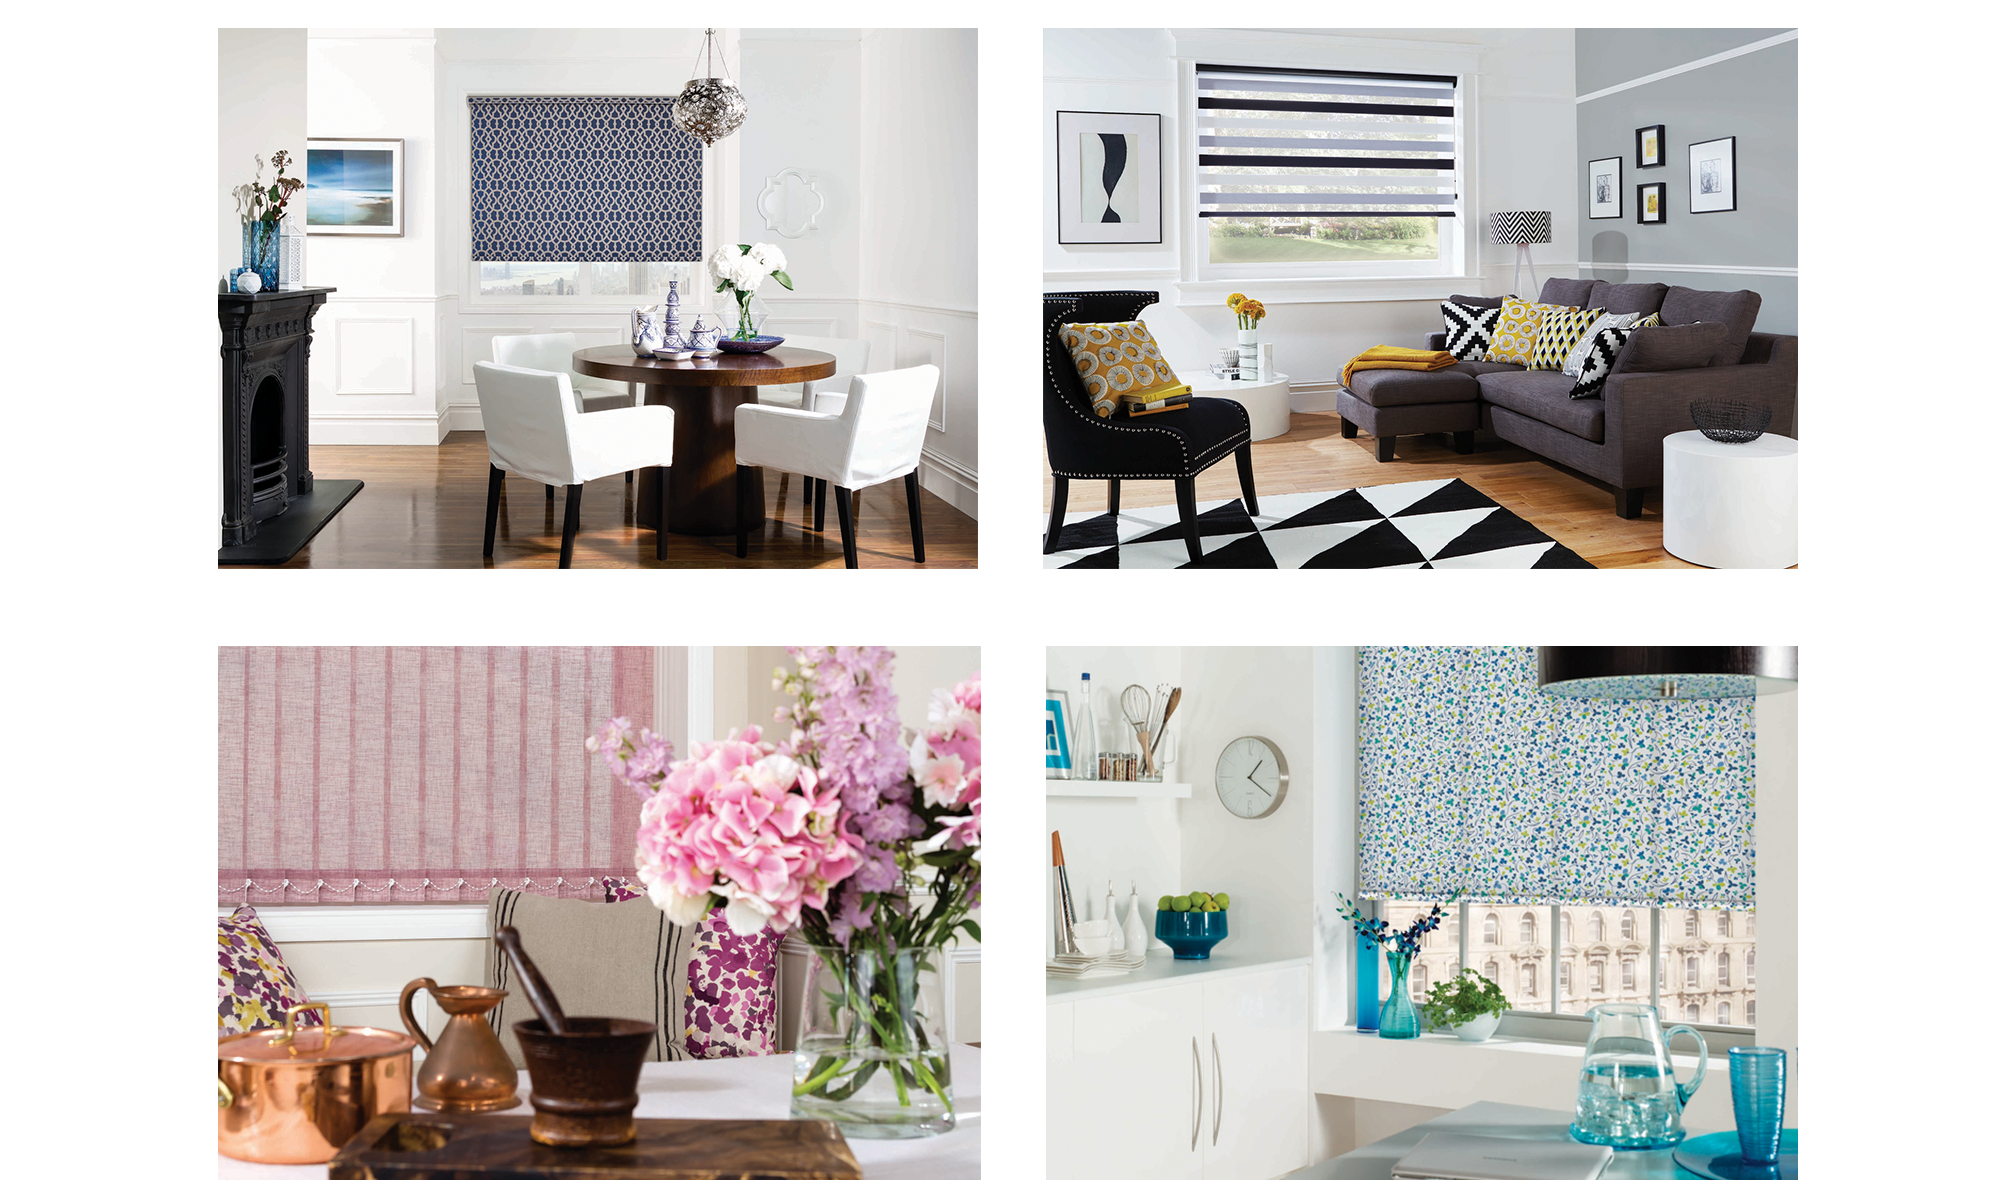 Inspiring Interiors Is A Small Privately Owned Business Specialising In The  Supply And Fit Of Top Quality Blinds, Handmade Curtains And Soft  Furnishings For ...